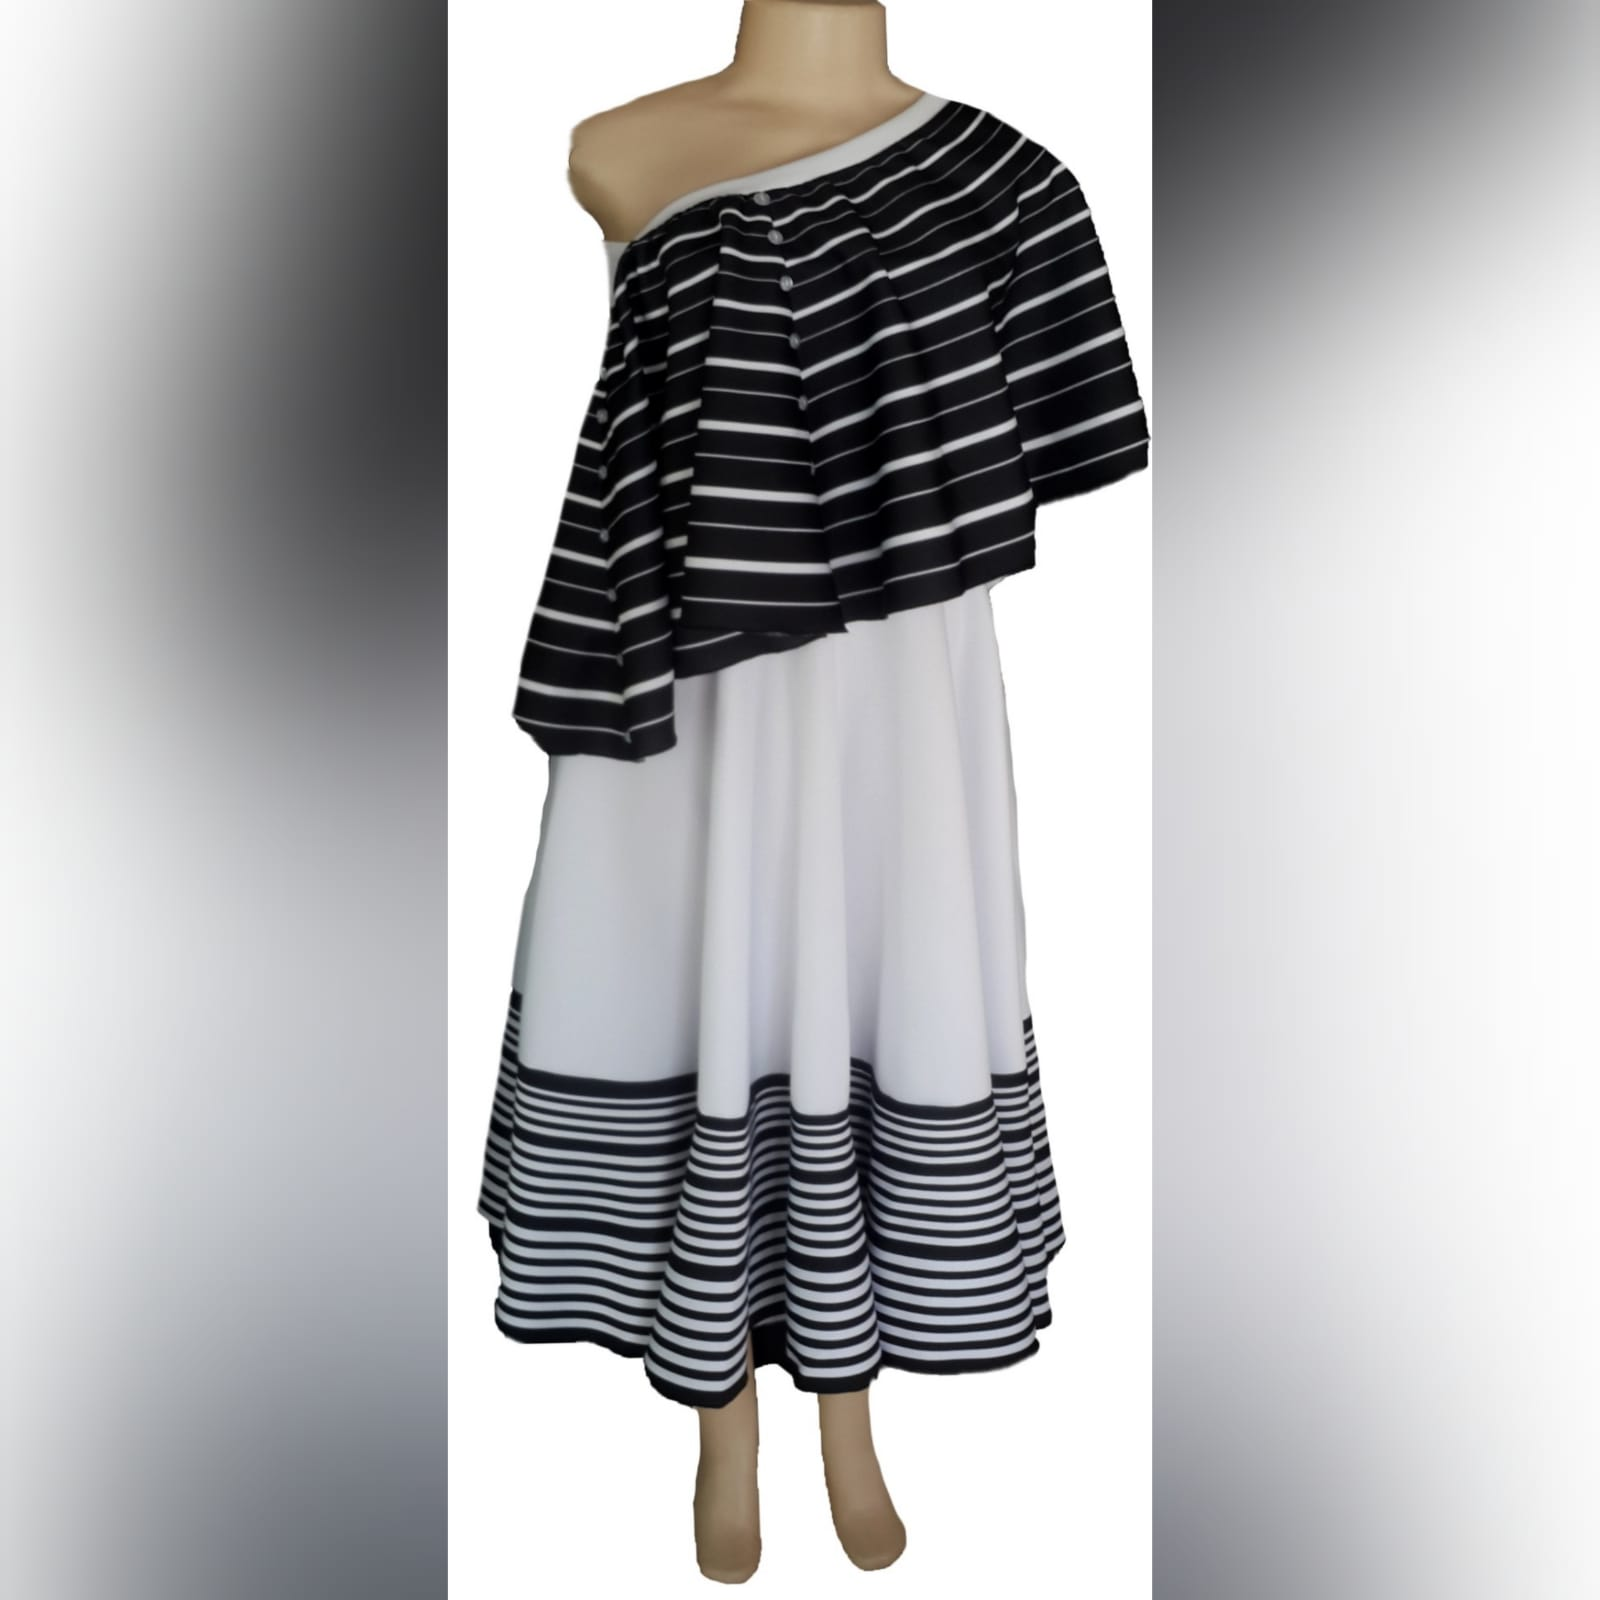 Black and white 2 piece modern traditional dress 1 xhosa black & white 2 piece modern traditional dress. Boob tube dress with a removable poncho